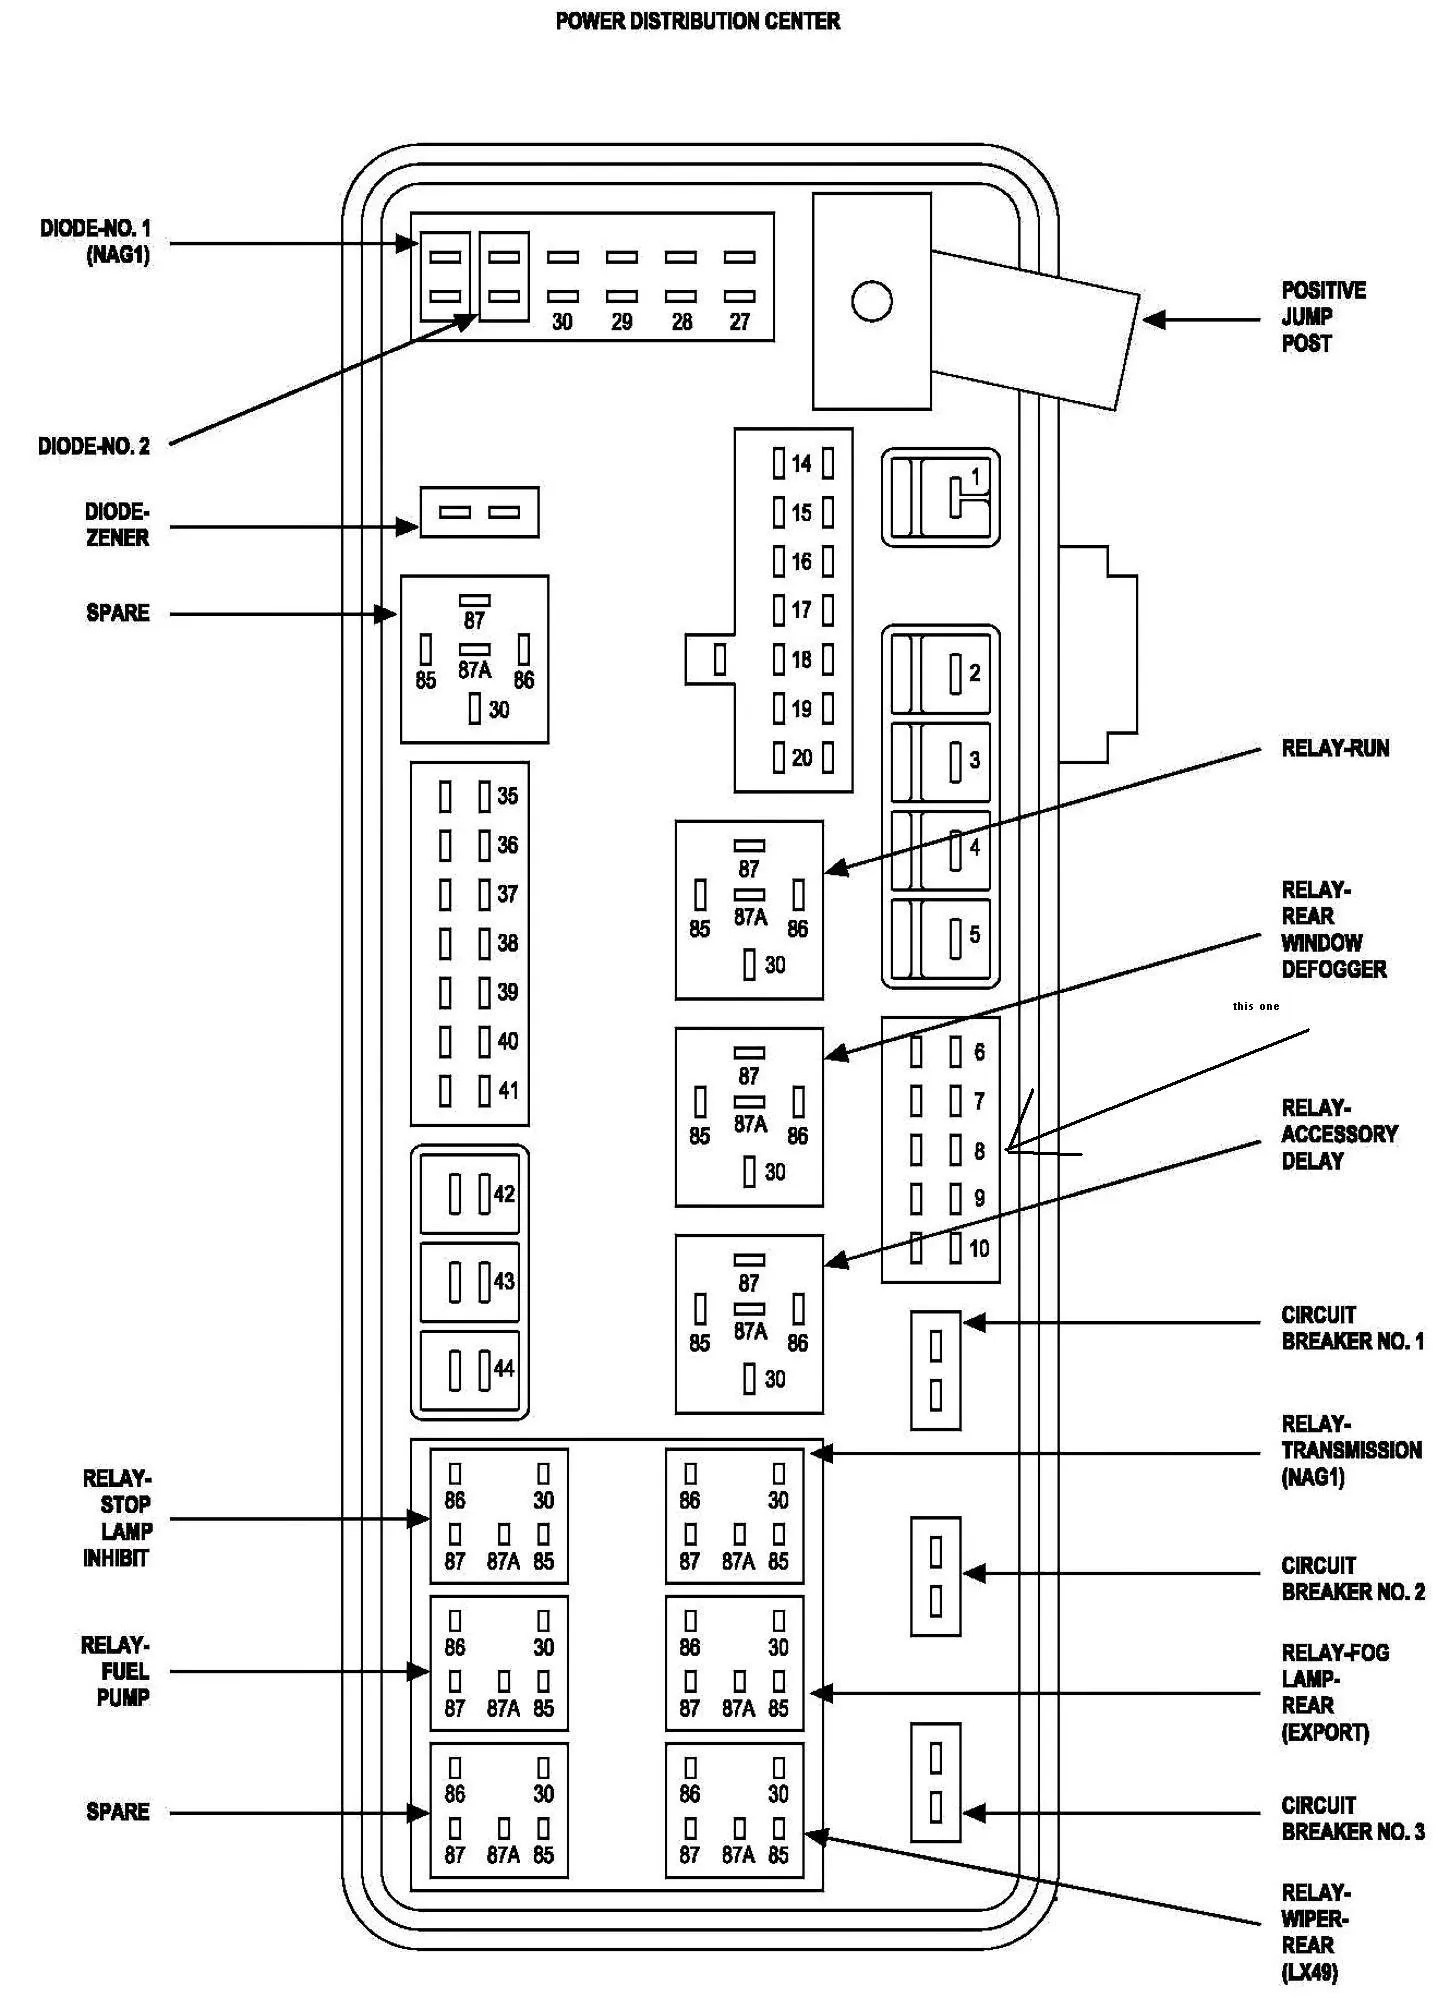 hight resolution of 2002 dodge dakota fuse box diagram problem schematic diagram 2002 dodge dakota fuse box diagram problem